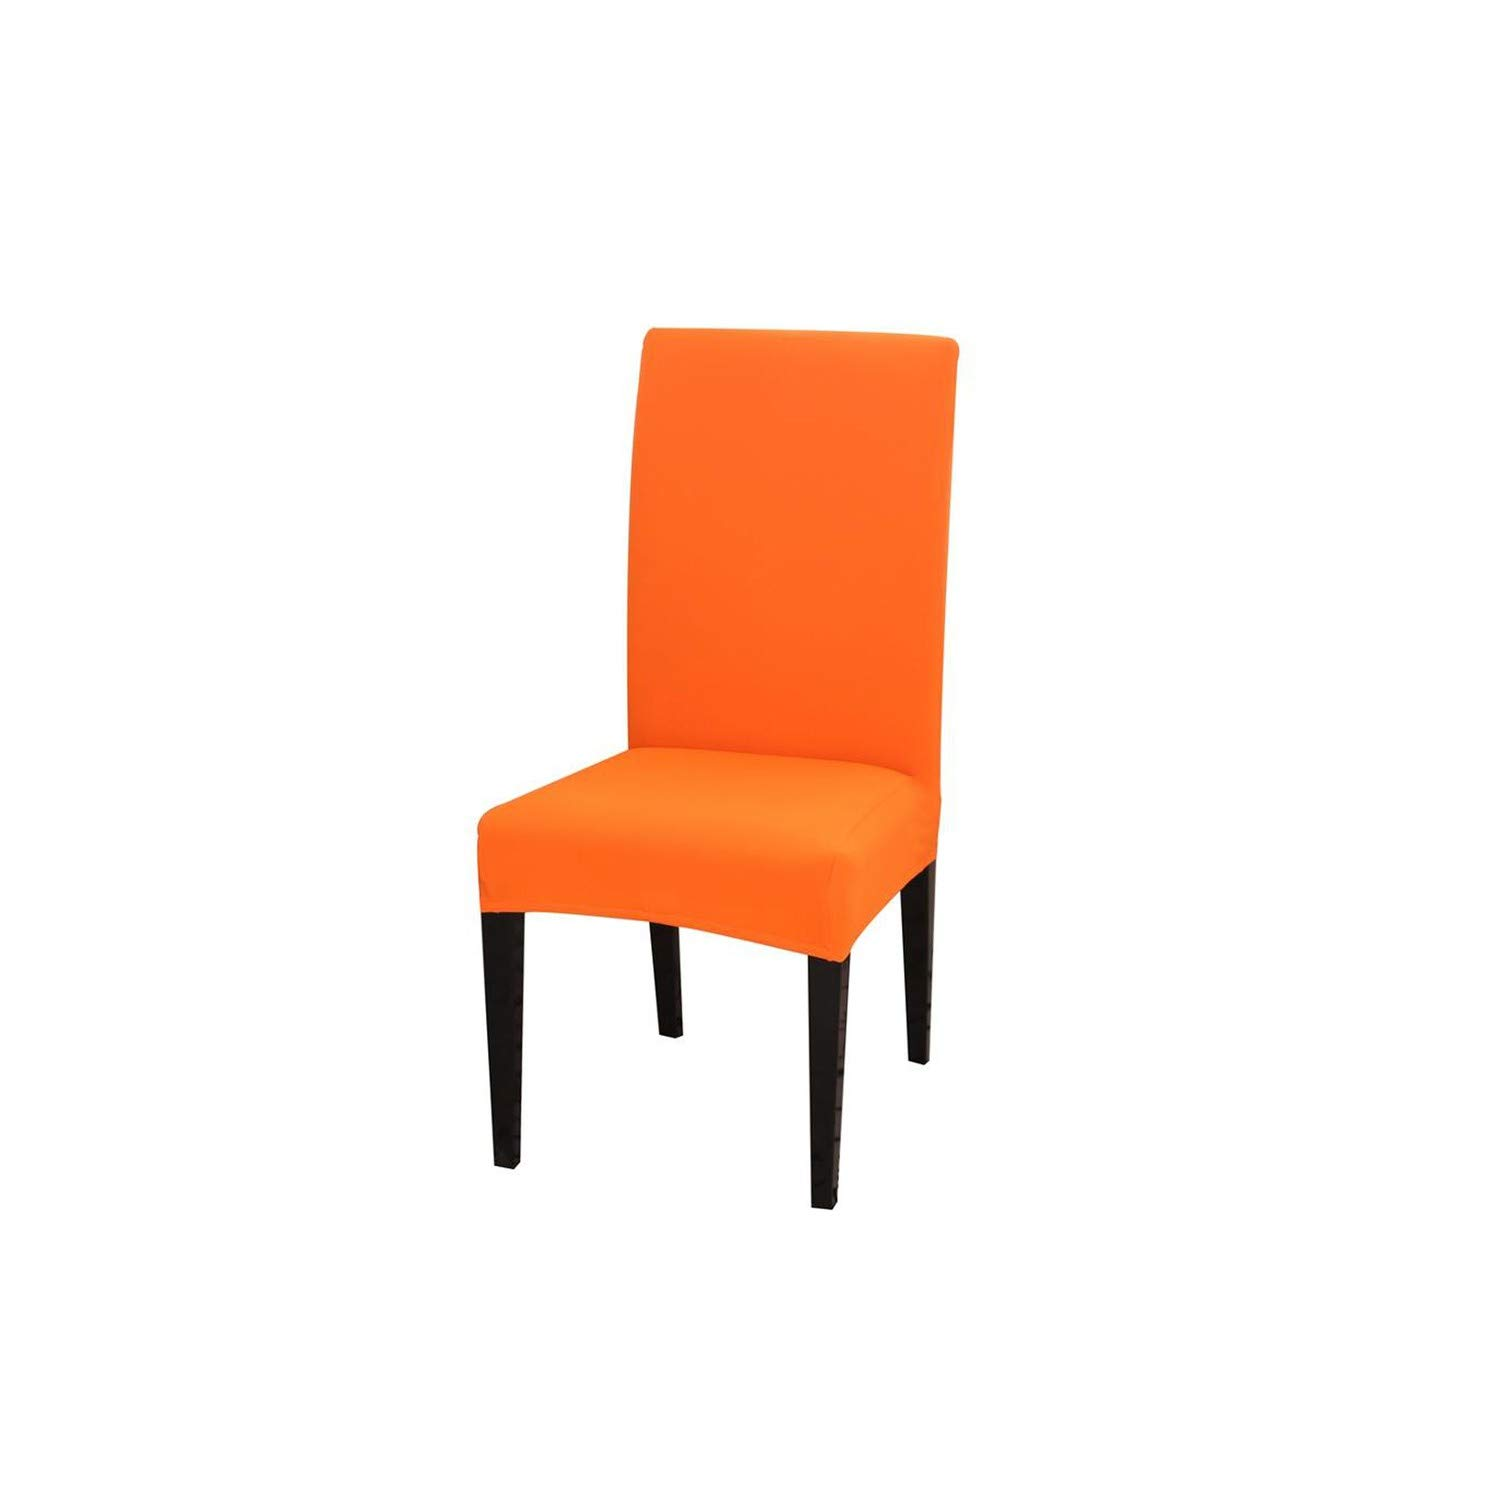 Huzzg Big Elastic Removable Dining Chair Cover Anti Dirty Flexible Solid Color Seat Case Folding Slipcover for Weddings Banquet,Orange,Universal Size